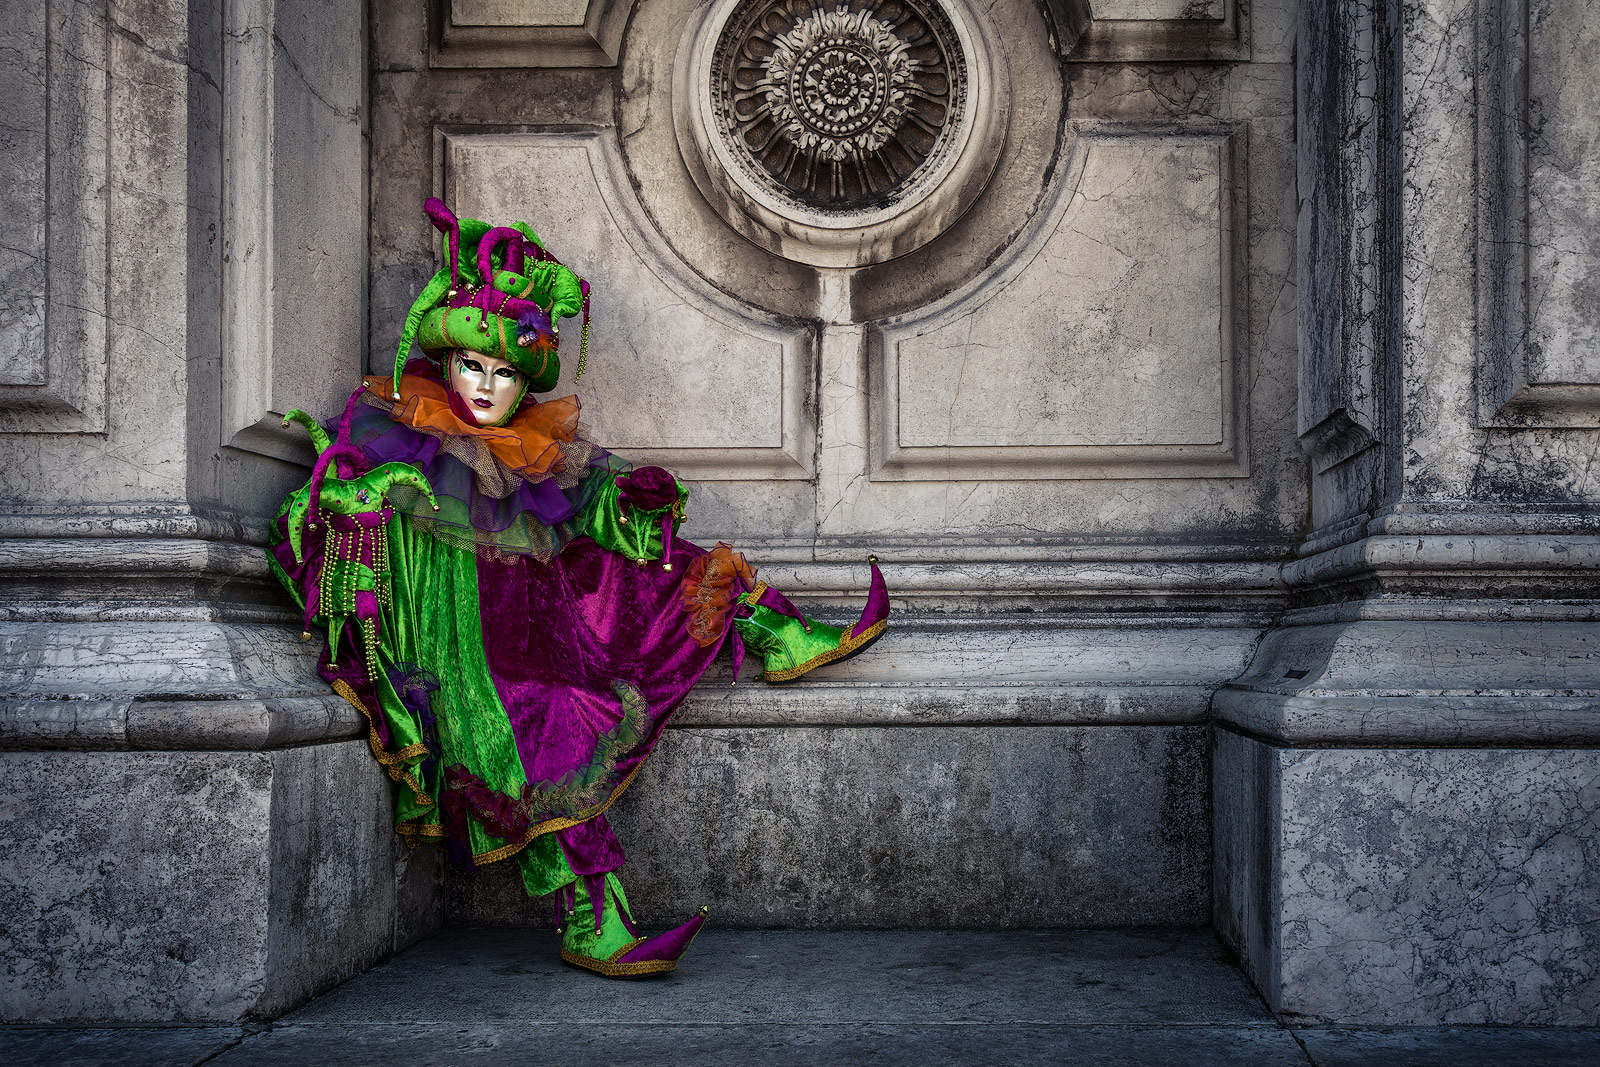 carnival, celebration, colorful, costume, europe, green, horizontal, italy, mask, party, san gorgio, sitting, venice, photo